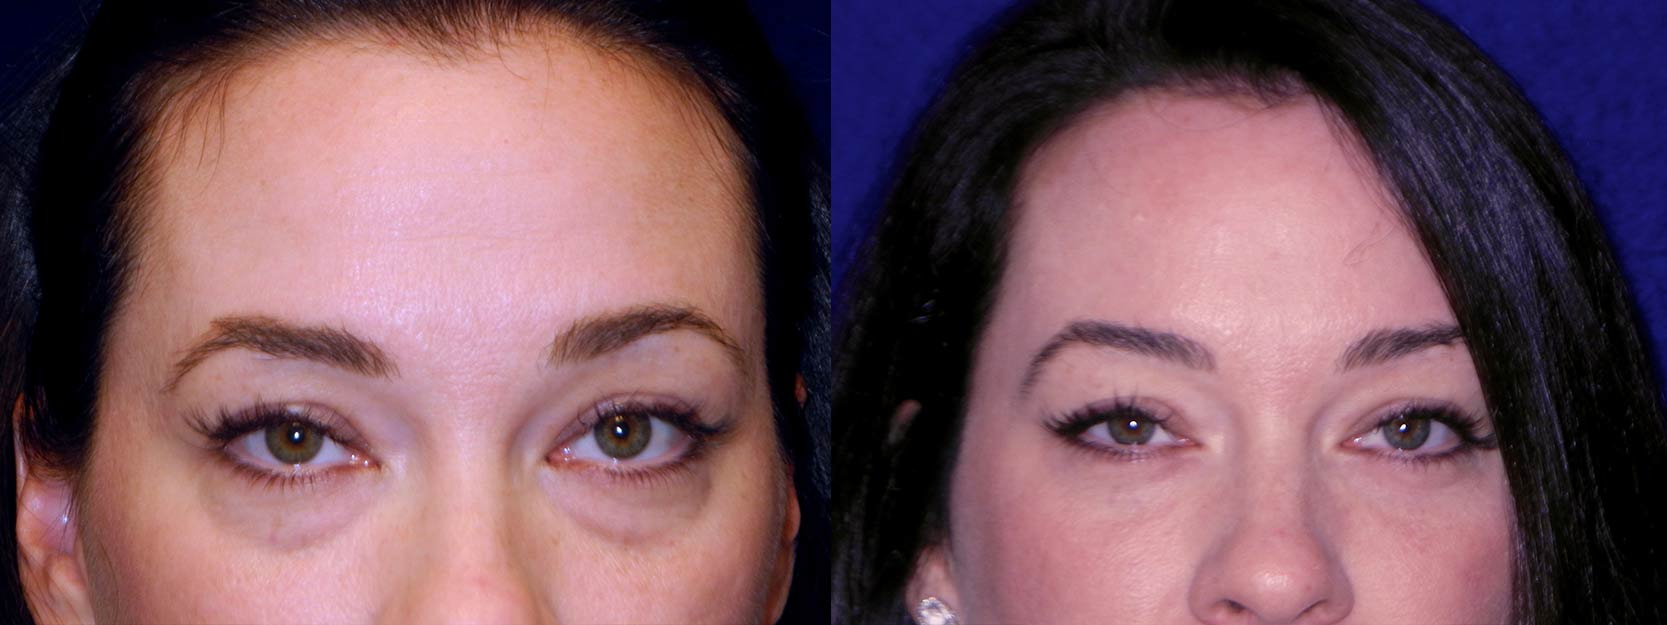 Frontal View - Lower Eyelid Surgery